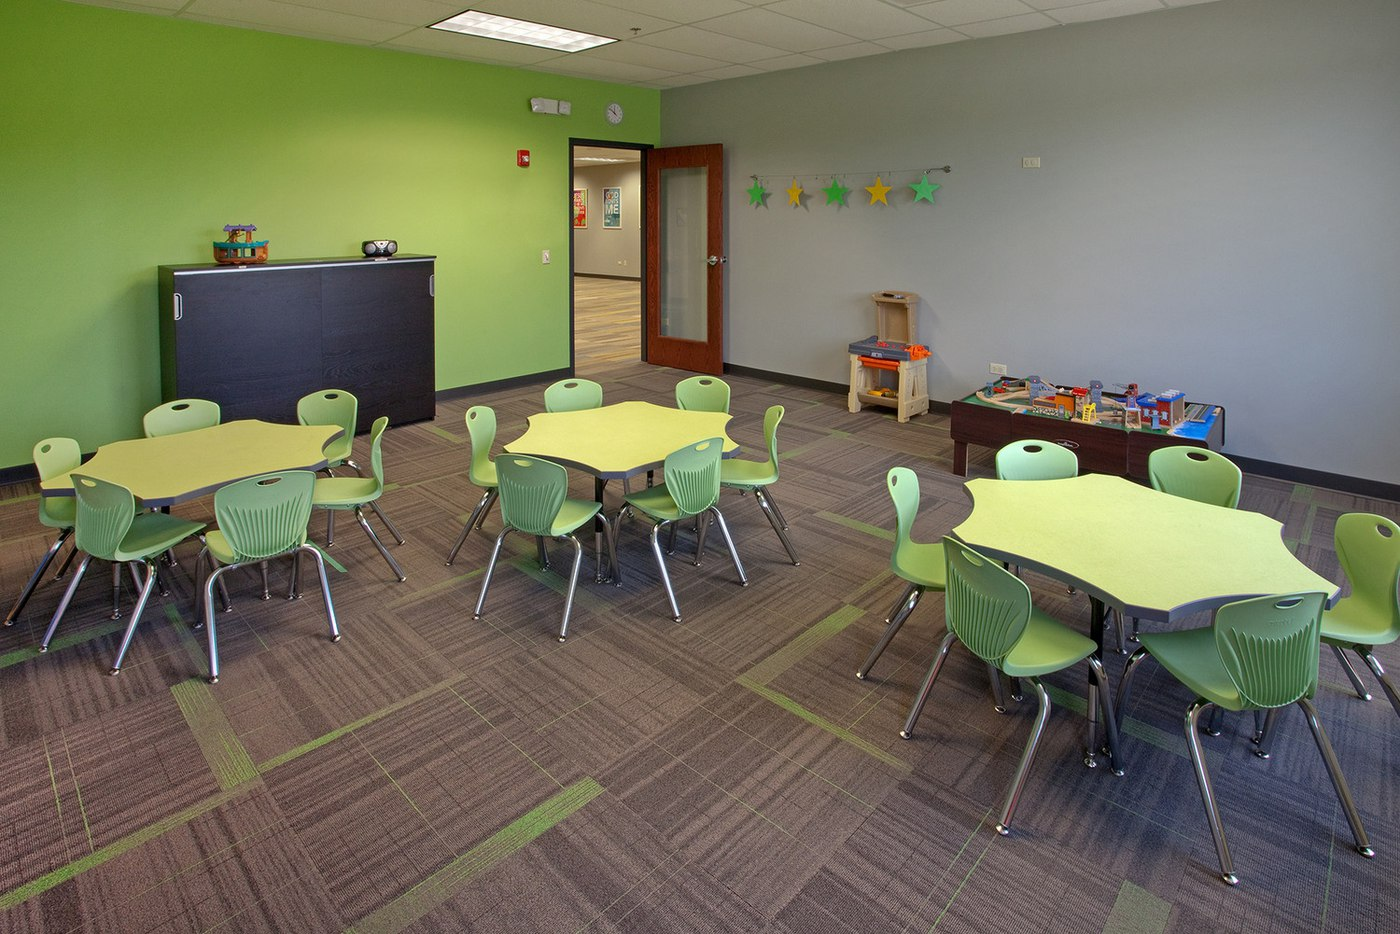 community-christian-church-plainfield-childrens-classroom.jpg